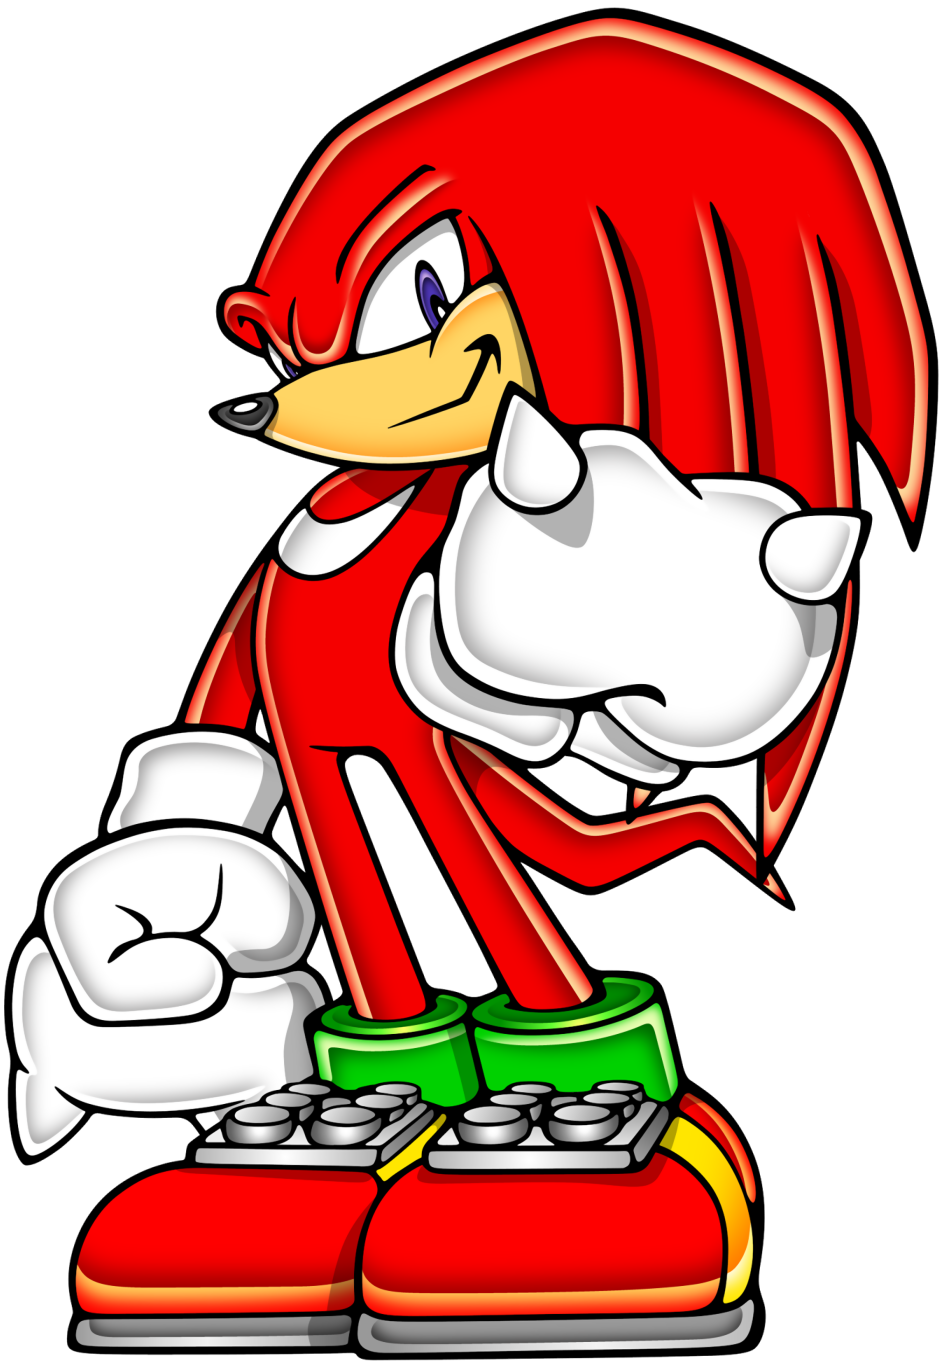 Sonic Advance Knuckles The Echidna Gallery Sonic Scanf Echidna Sonic Art Sonic Knuckles